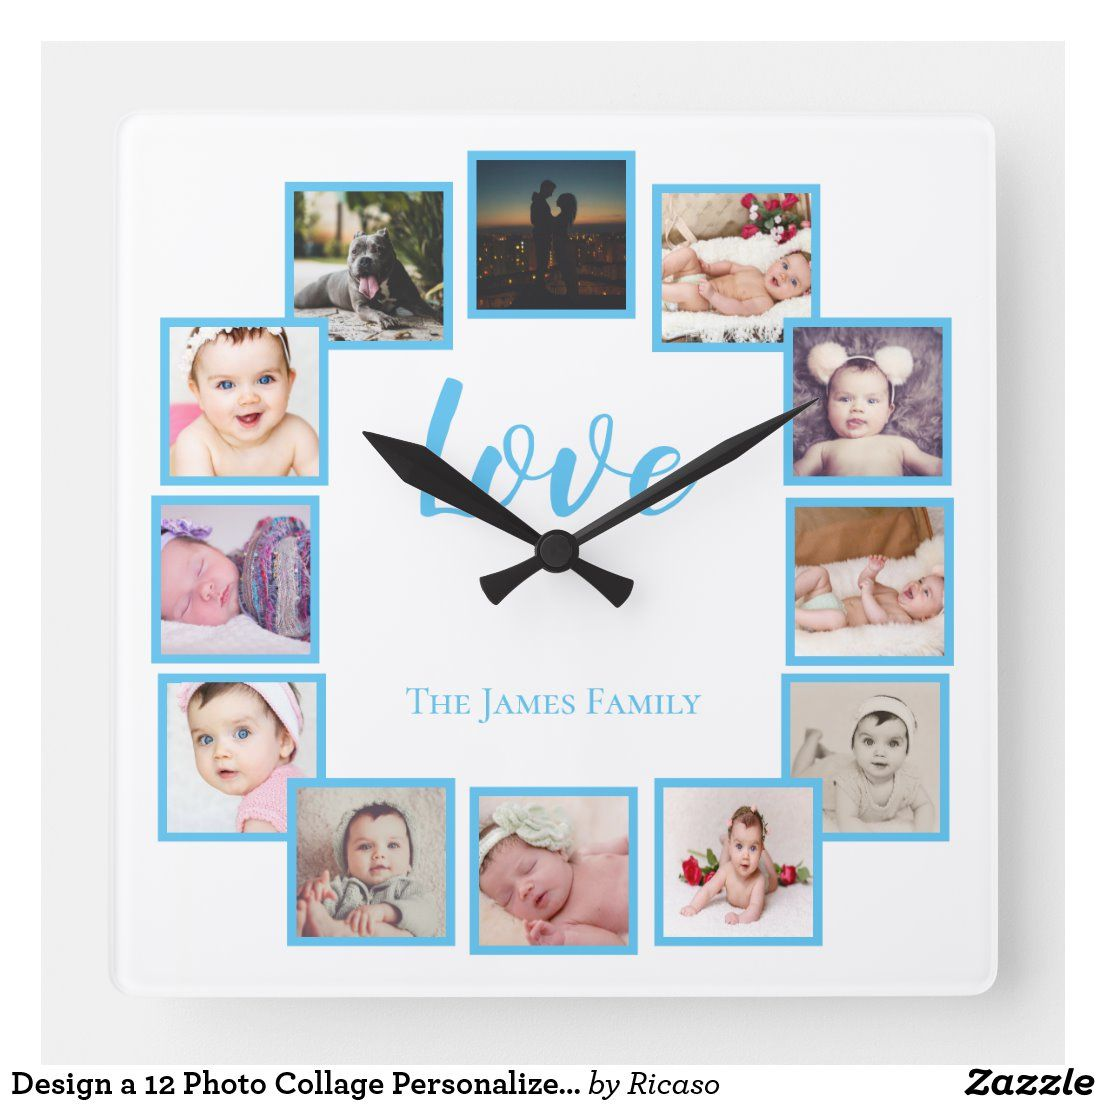 Design A 12 Photo Collage Personalized Blue Square Wall Clock Zazzle Com In 2020 12 Photo Collage Photo Collage Square Wall Clock